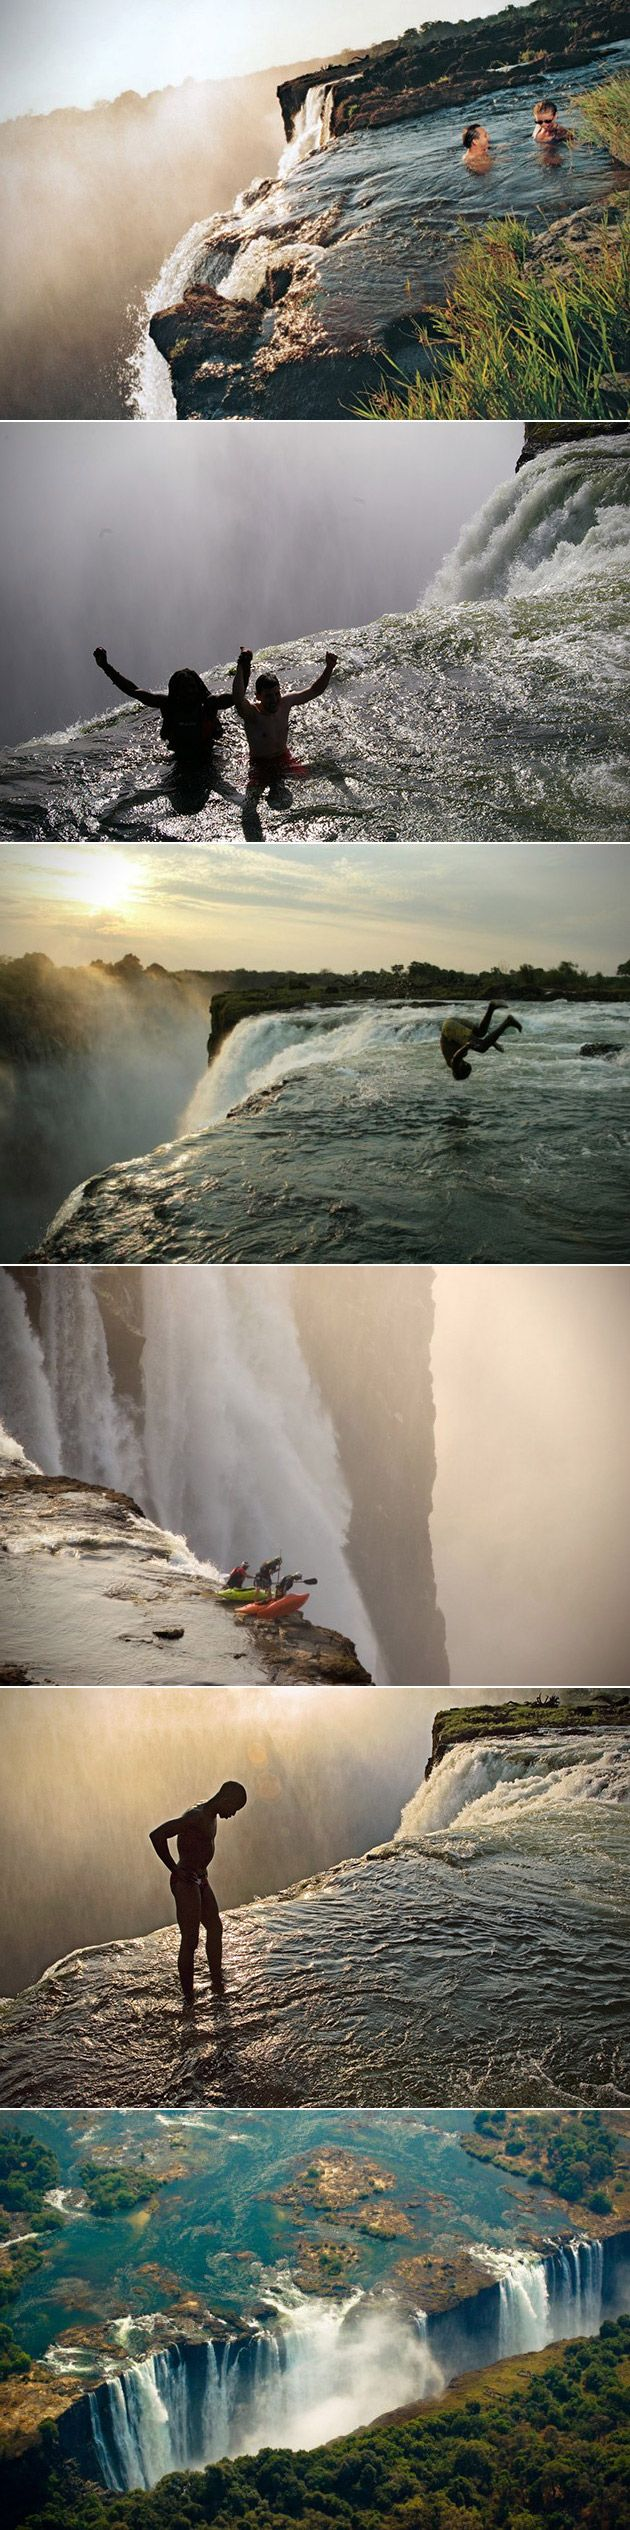 Best 25 Victoria Falls Ideas On Pinterest Zimbabwe Country Natural Wonders And Natural World